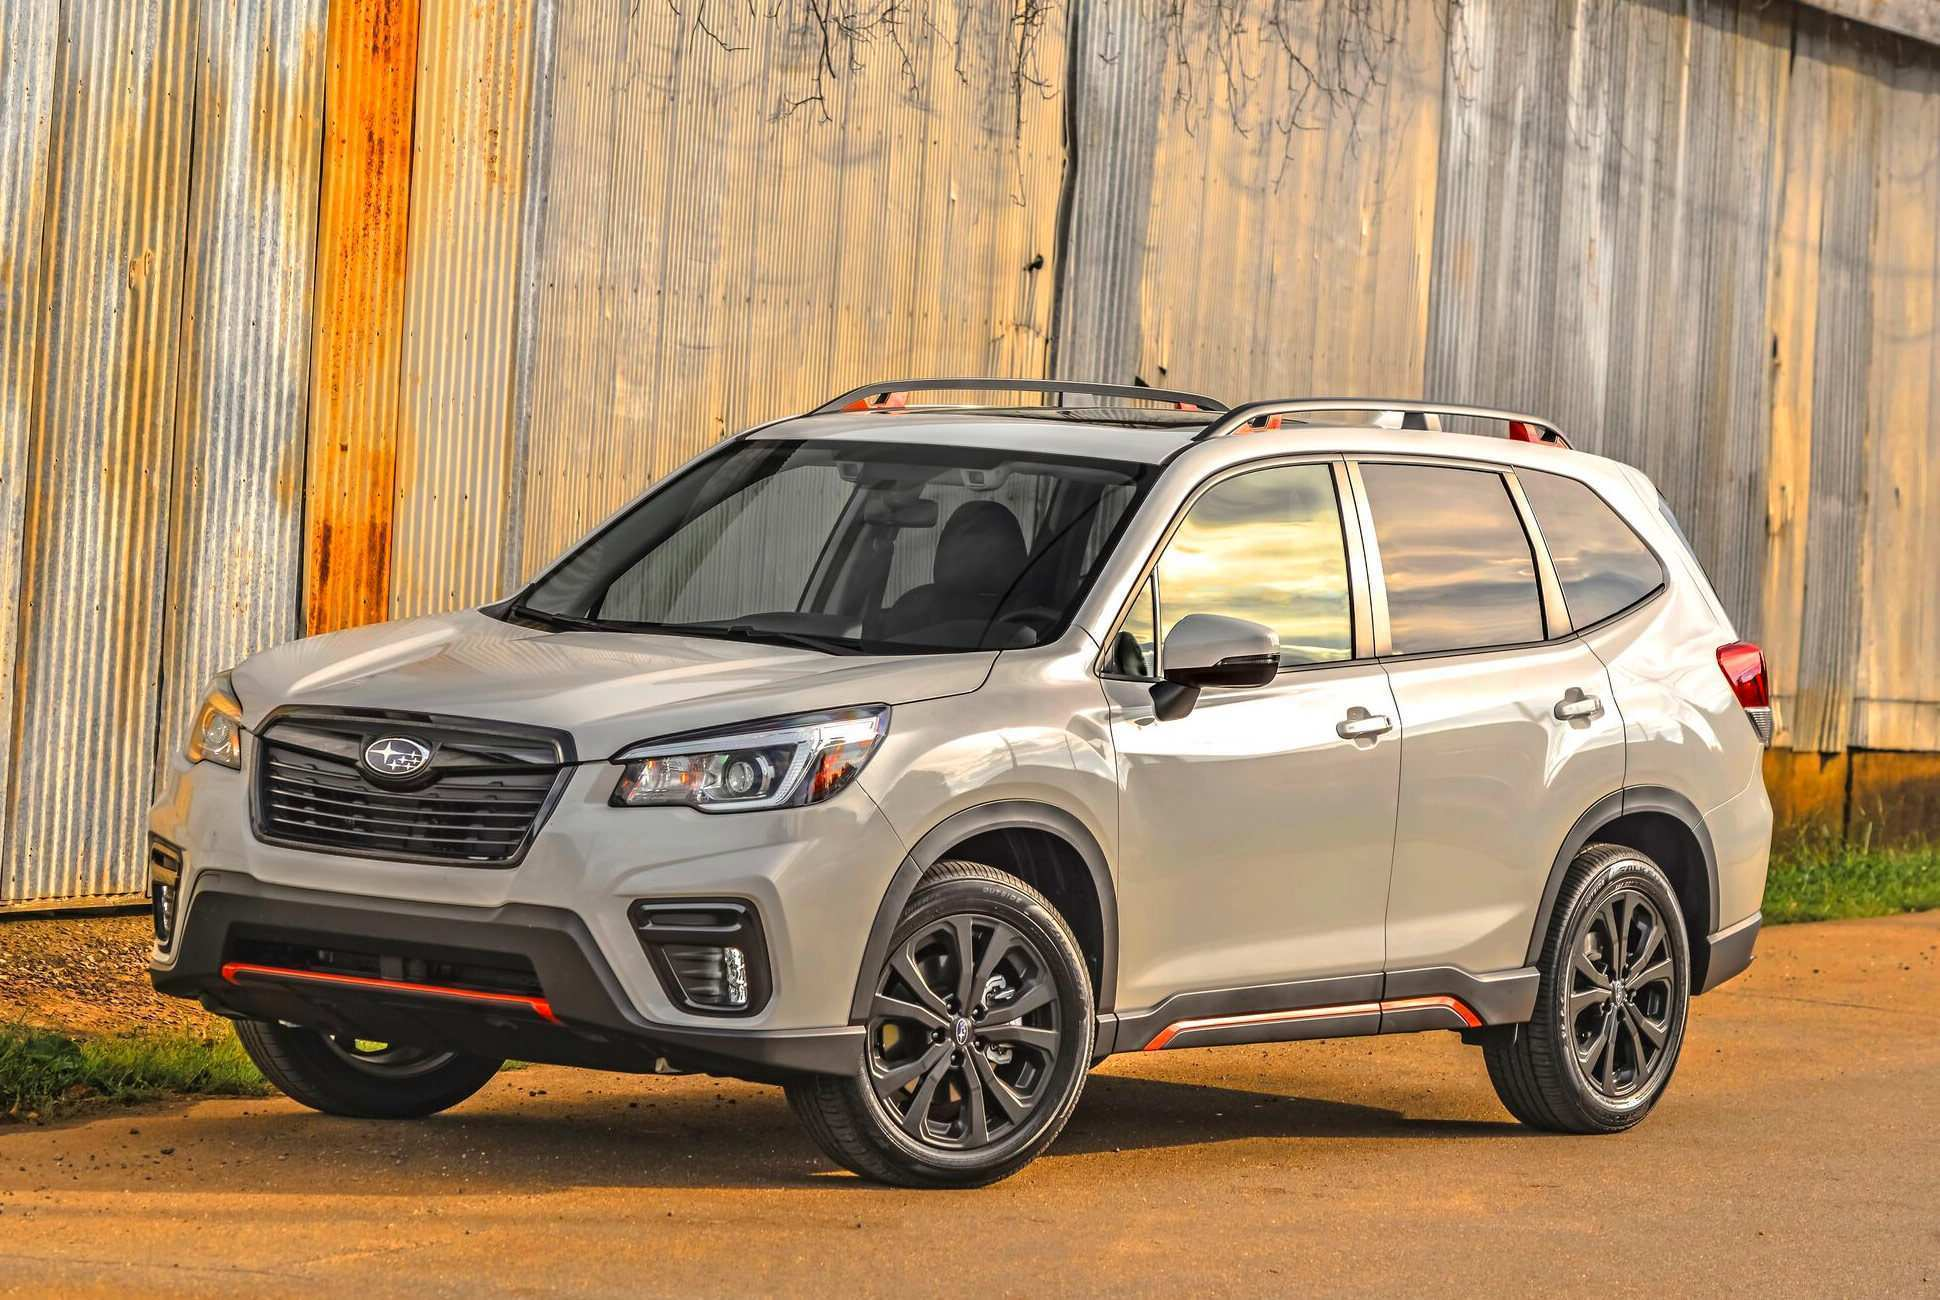 73 New 2019 Subaru Forester Mpg Model